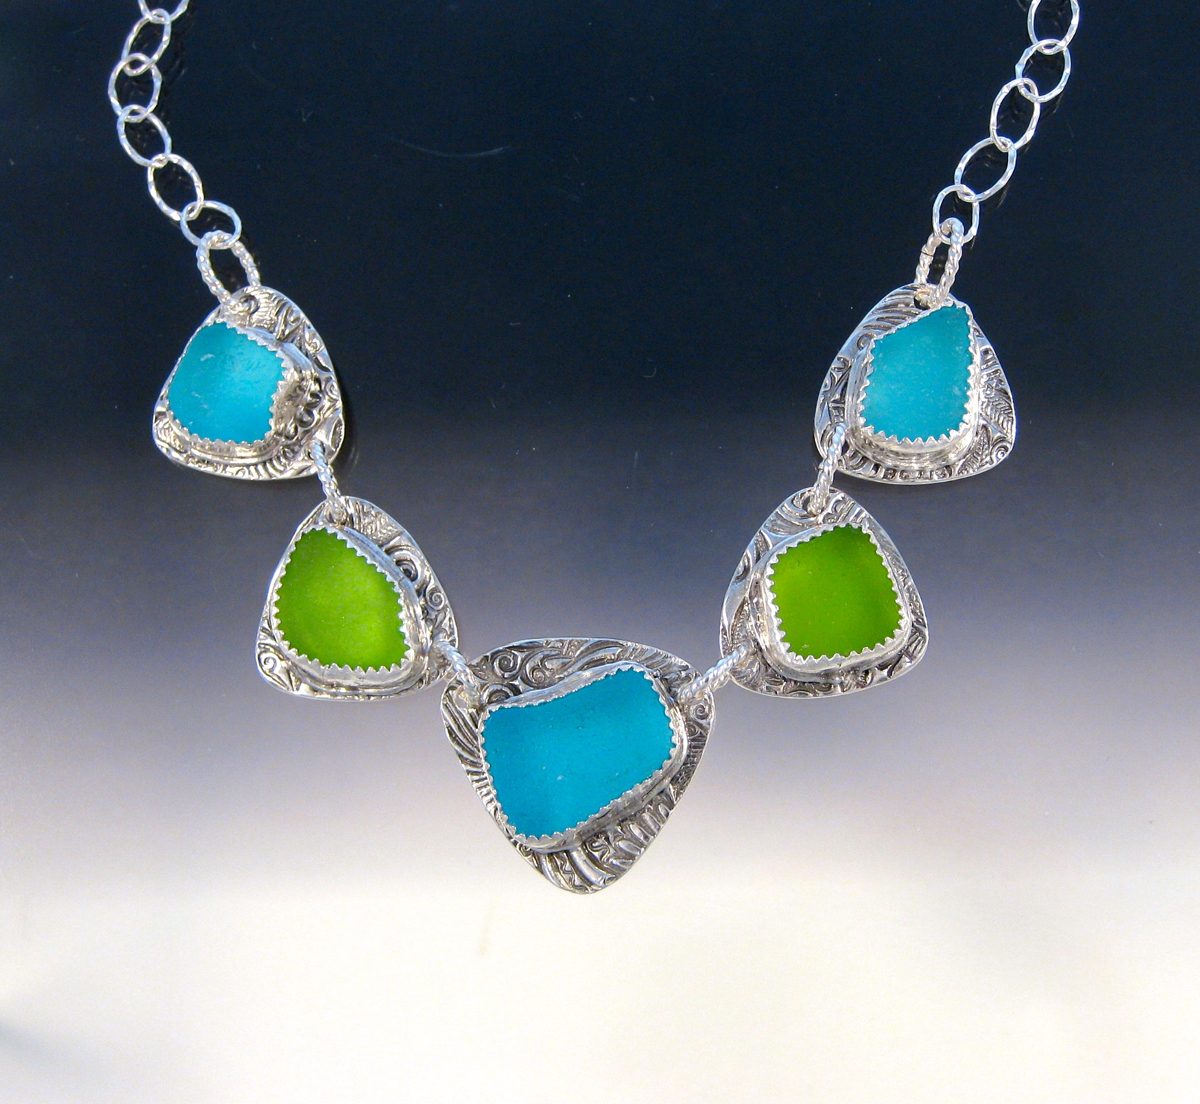 P5080 - Turquoise and lime green necklace (large view)